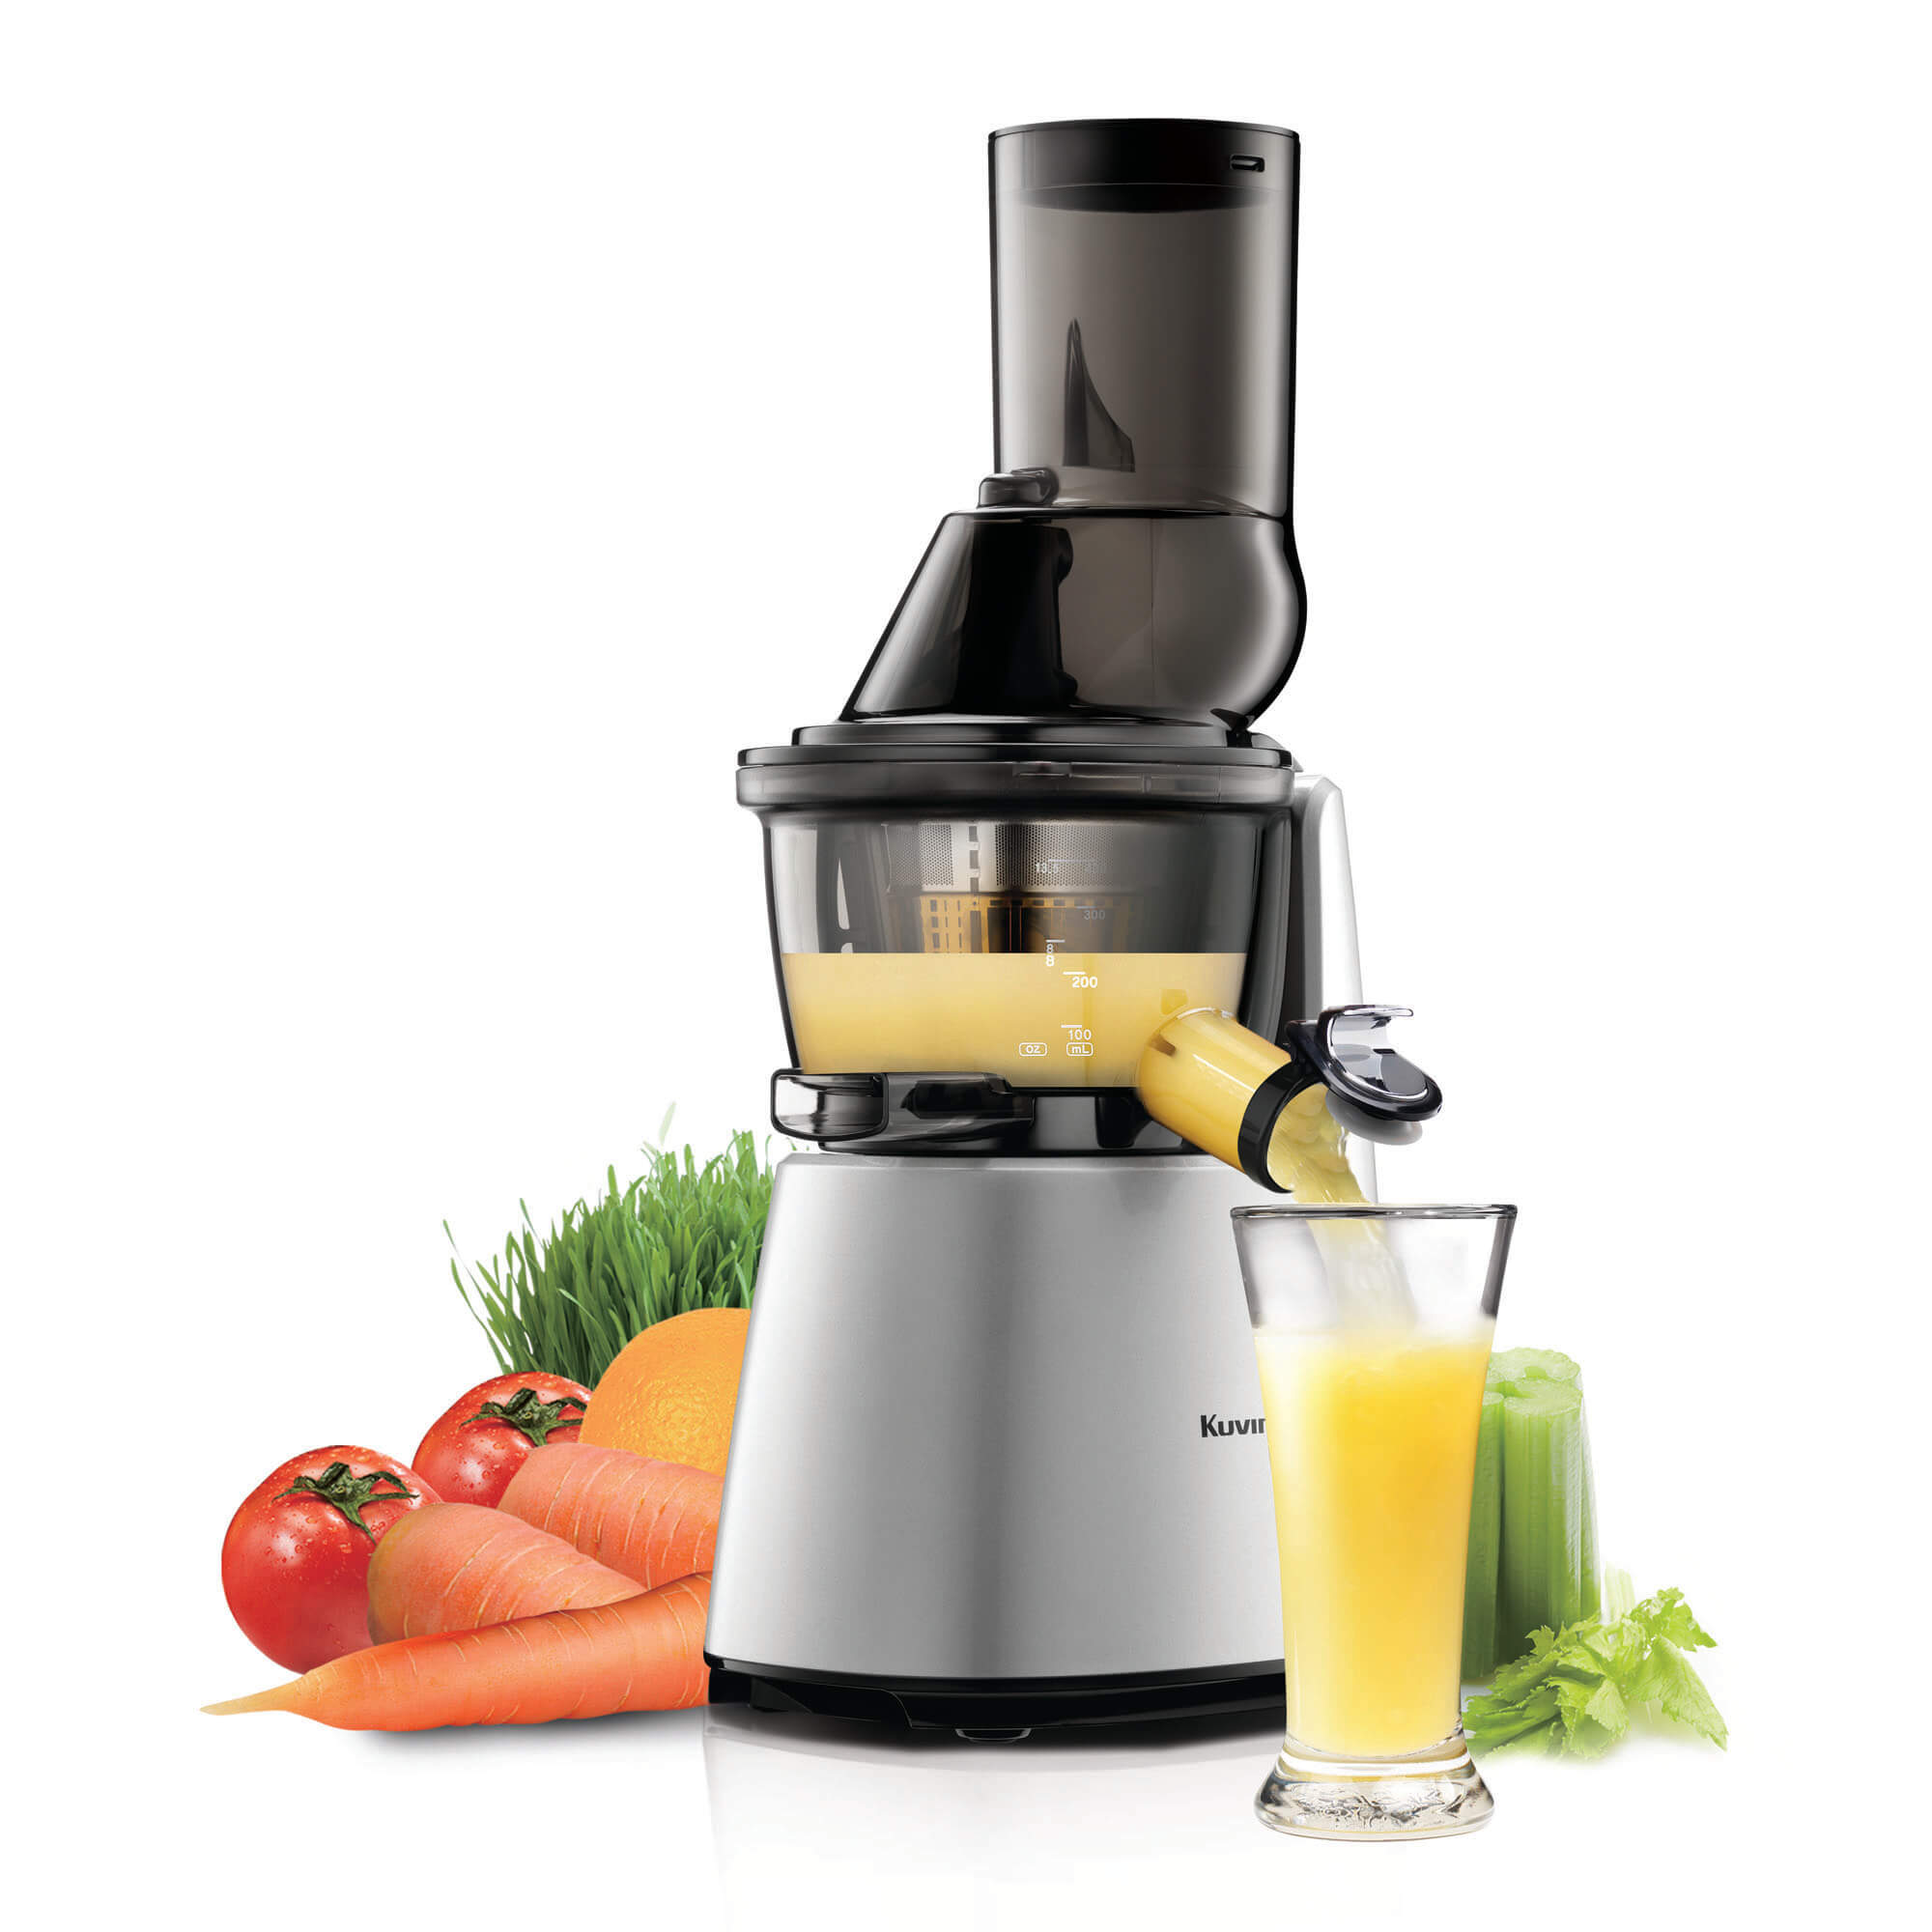 Slow Masticating Juicer Recipes : Juicers, Choppers and Strainers